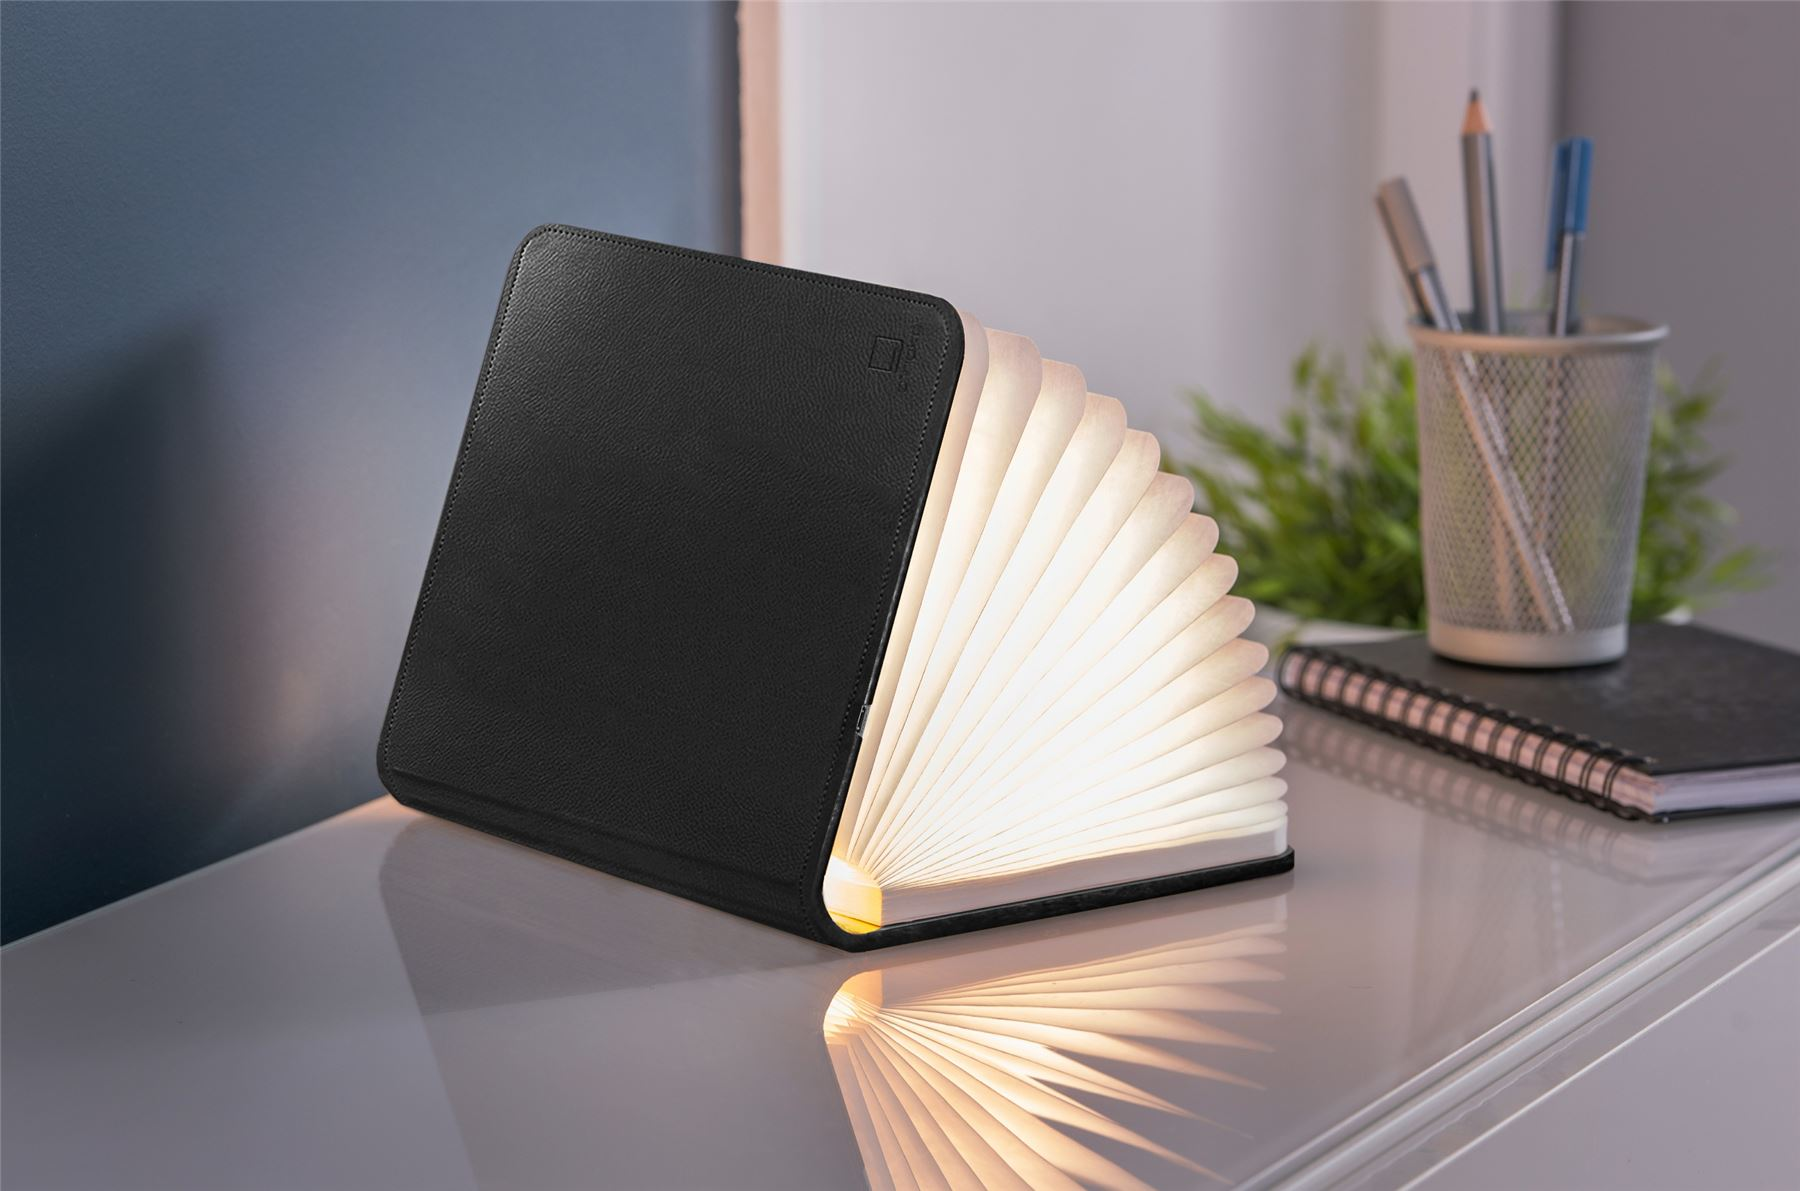 LED-Wood-Leather-Effect-Book-Desk-Lamp-Gingko-USB-Rechargeable-360-Light miniatuur 3